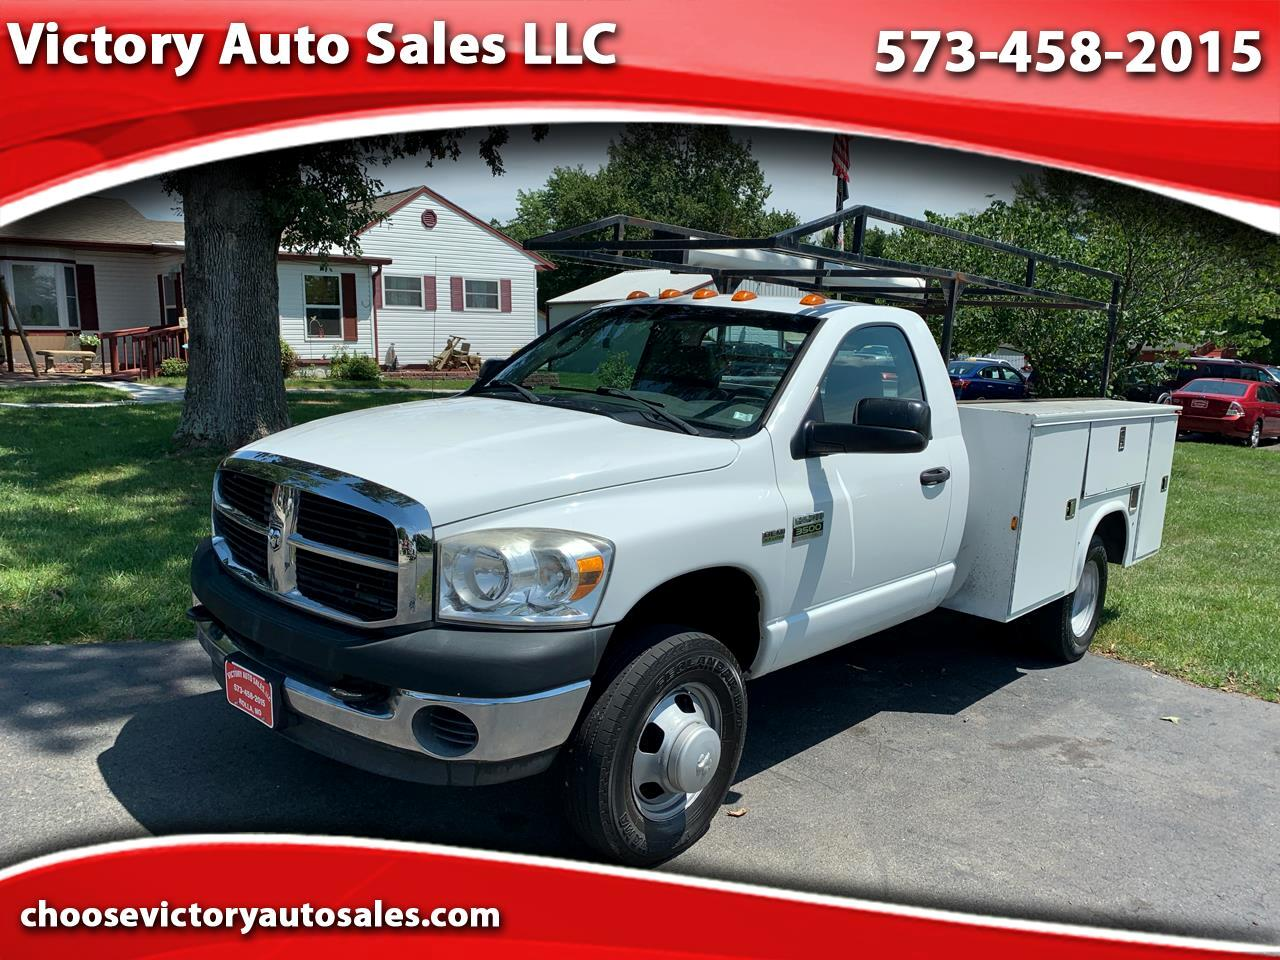 2007 Dodge Ram 3500 Regular Cab 2WD